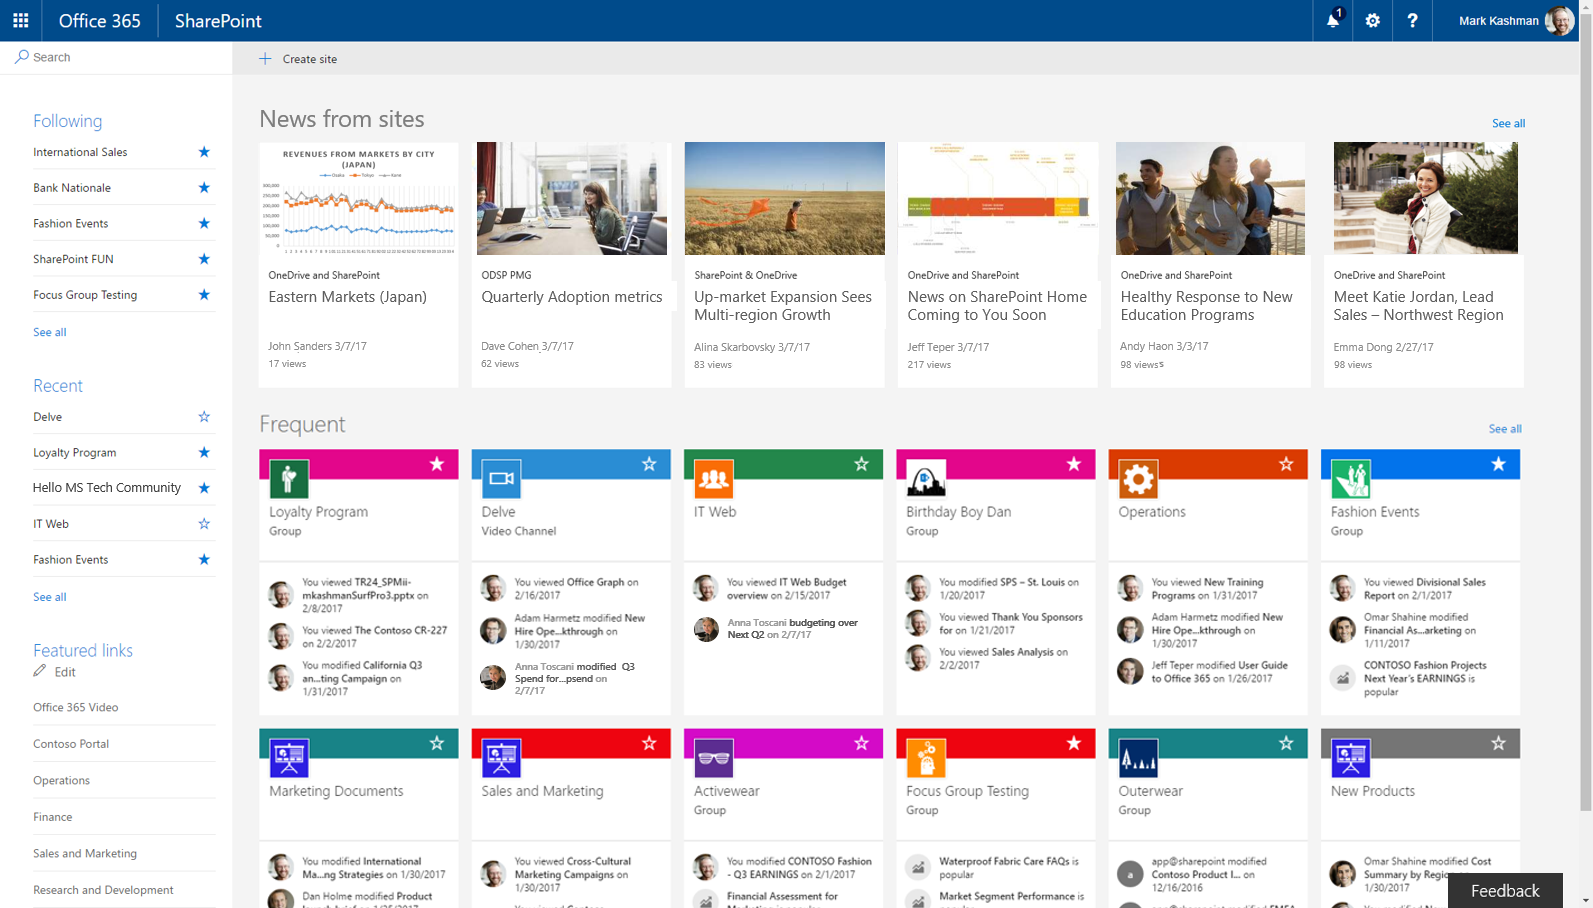 Sharepoint Home In Office 365 And Team News Updates Across Web Mobile